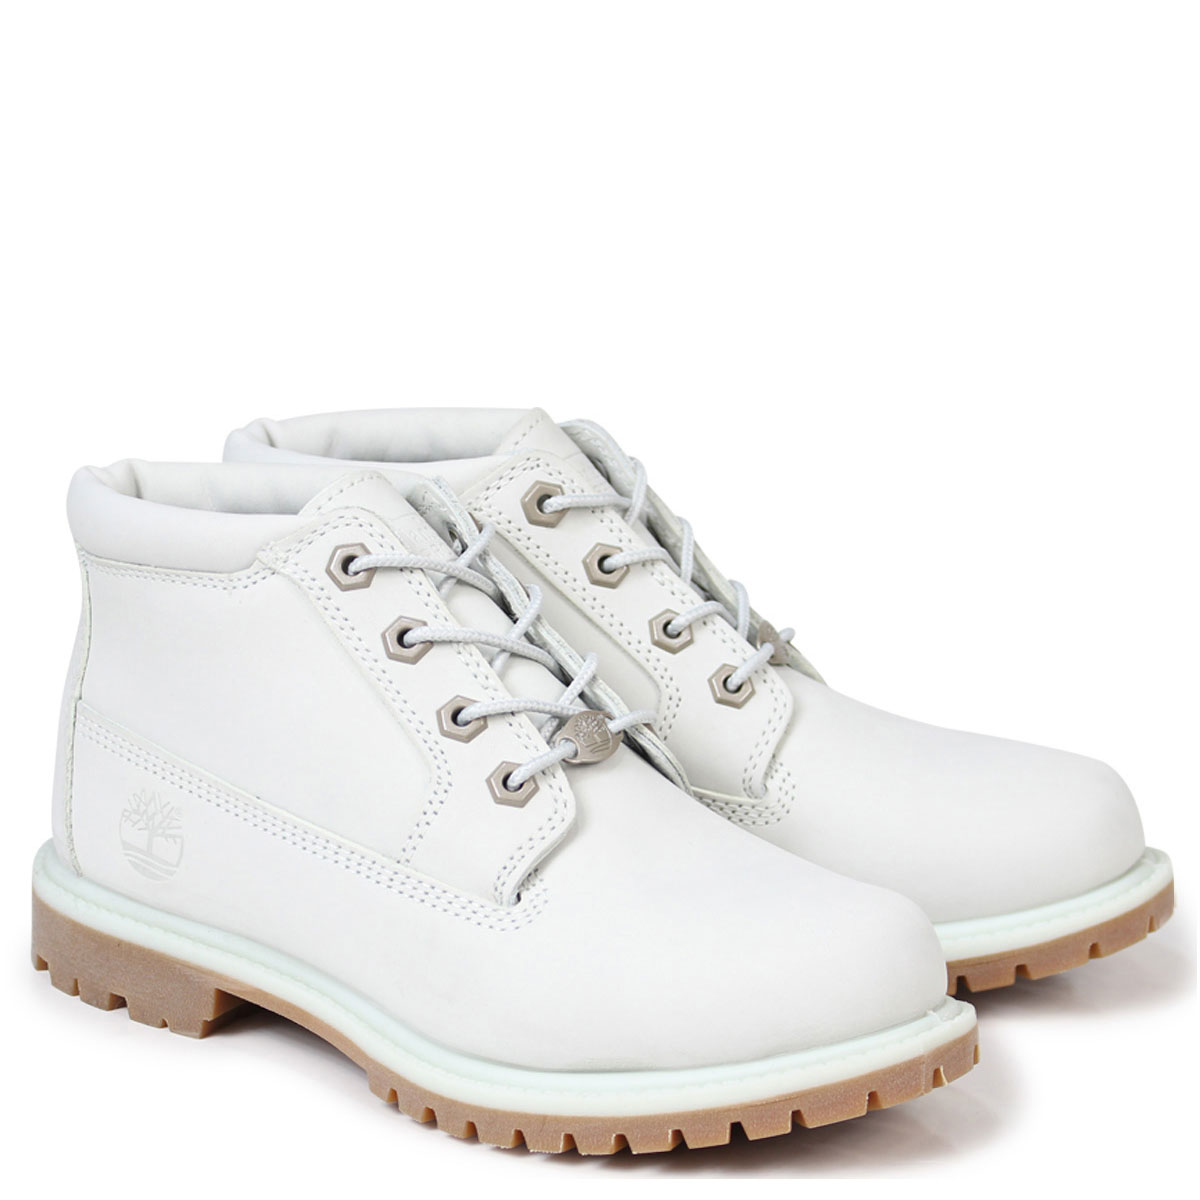 Timberland WOMEN  S NELLIE WATERPROOF CHUKKA BOOTS チャッカレディースティンバーランドブーツ  A1NDK W Wise light blue  1 25 Shinnyu load   181  8708a2ffda